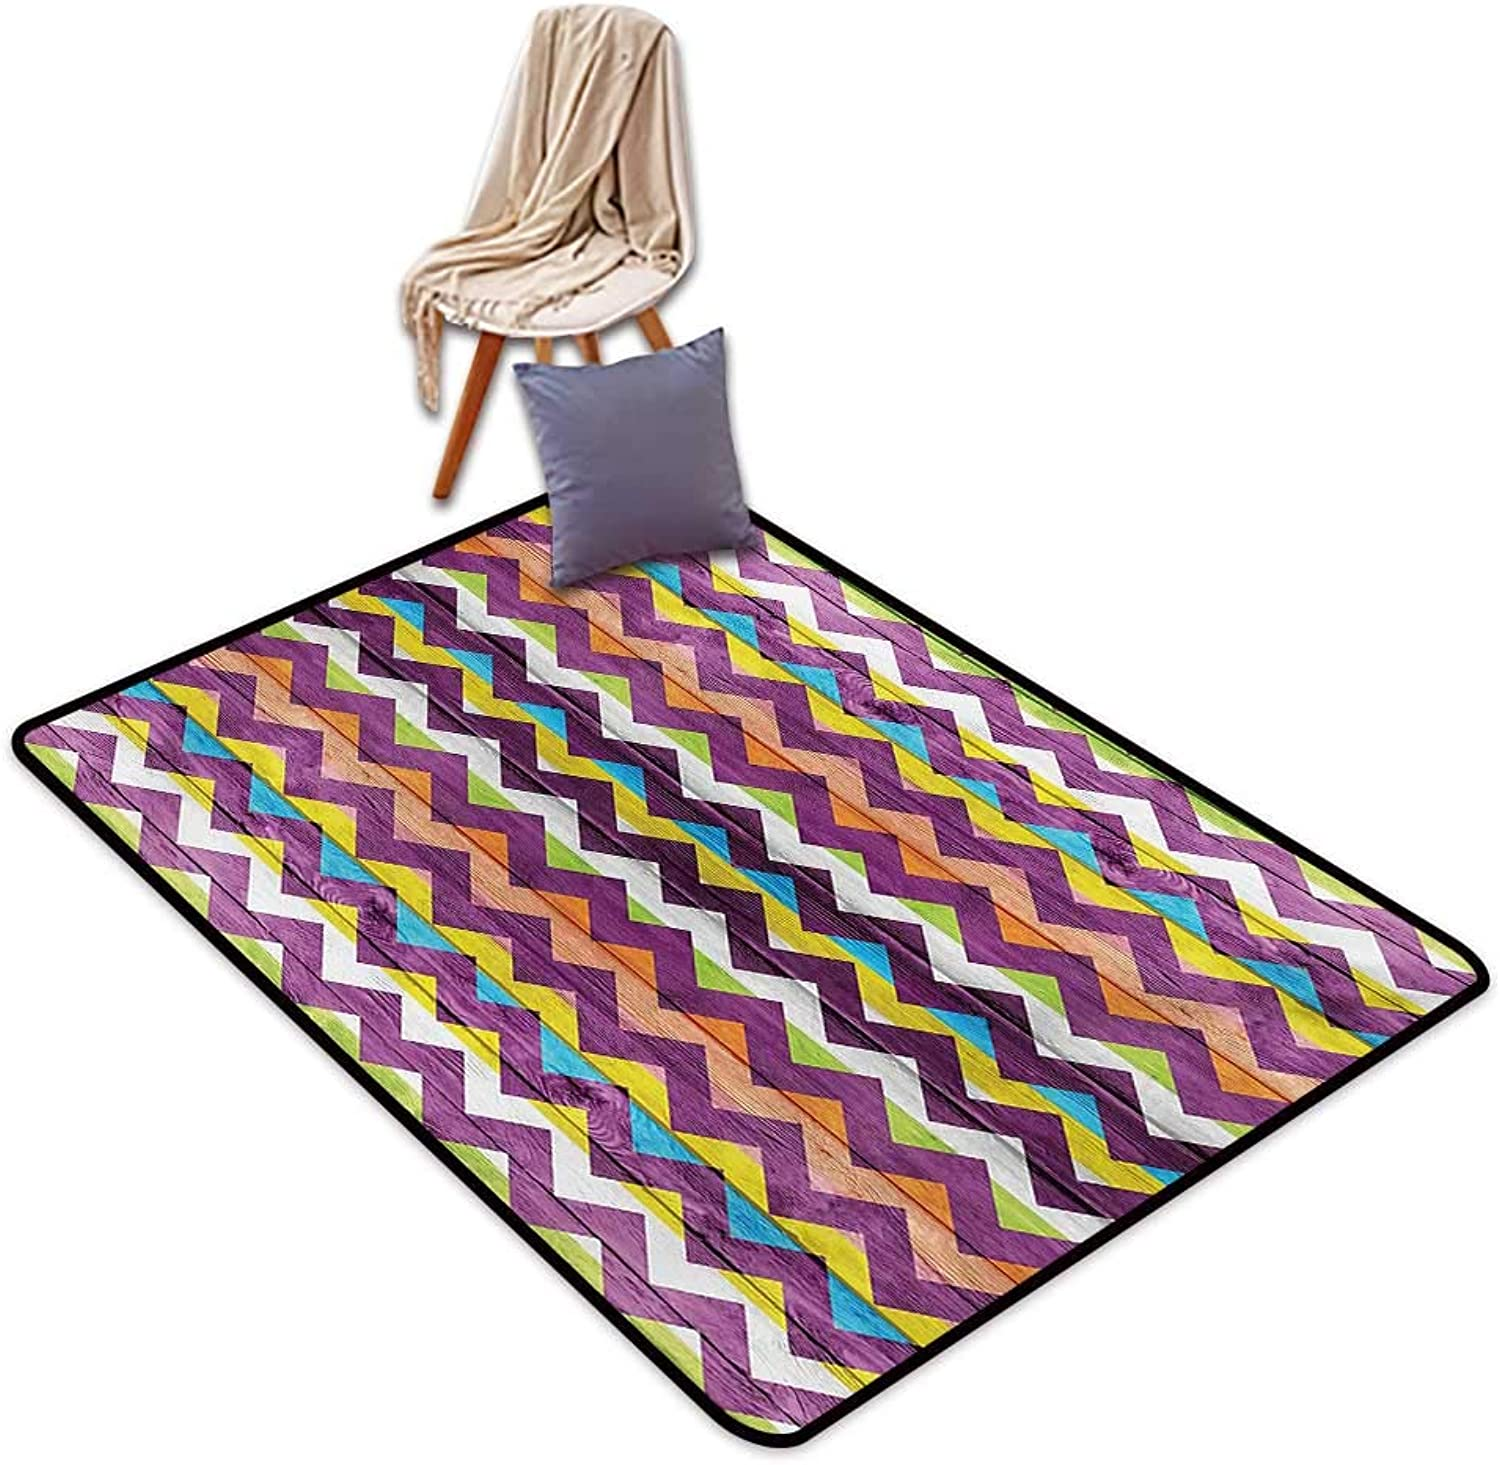 Chevron Household Bathroom Door mat Chevron Schemes on Wood Texture Geometrical Similar to Triangle Vibrant Graphic Water Absorption, Anti-Skid and Oil Proof 48  Wx59 L Multicolor